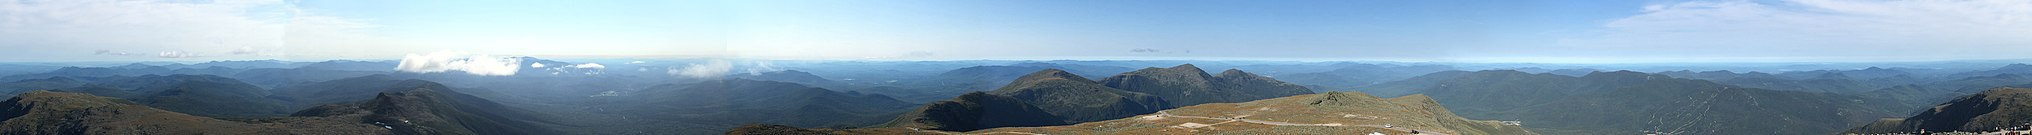 Mount Washington view